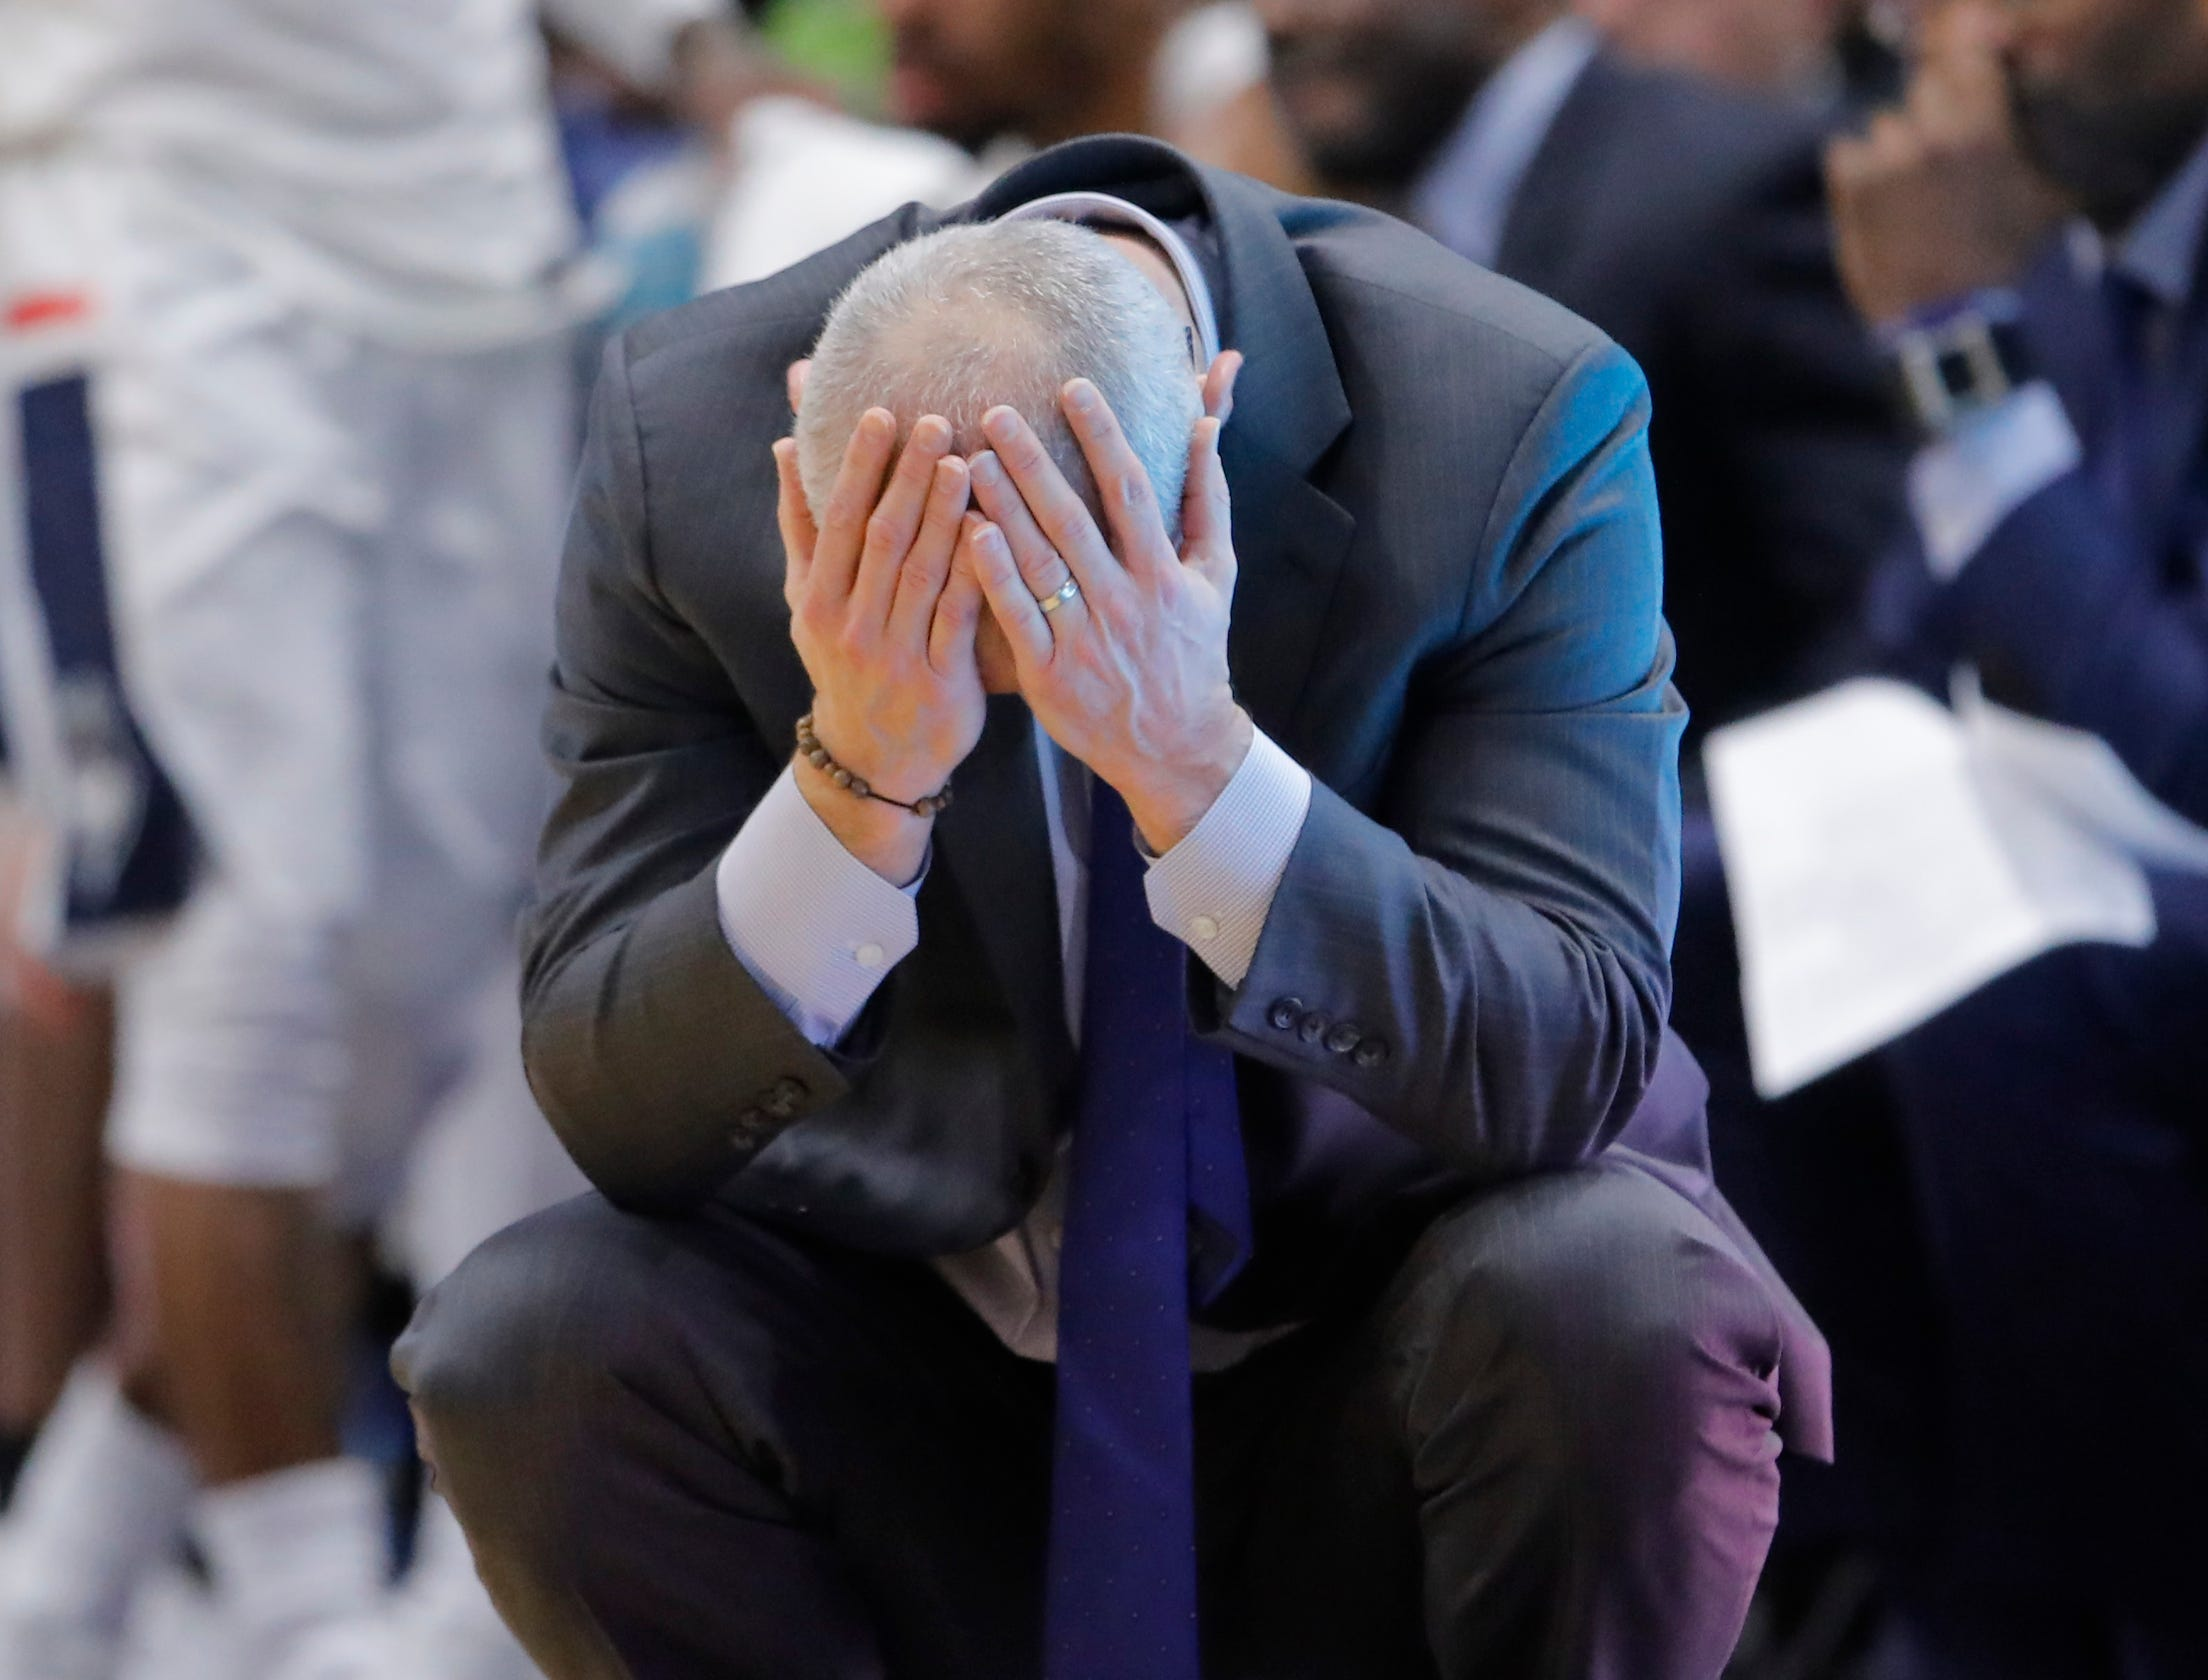 Nov 20, 2018; Storrs, CT, USA; Connecticut Huskies head coach Dan Hurley reacts on the sideline during the second half against the Cornell Big Red in at XL Center. UConn defeated Cornell 91-74. Mandatory Credit: David Butler II-USA TODAY Sports